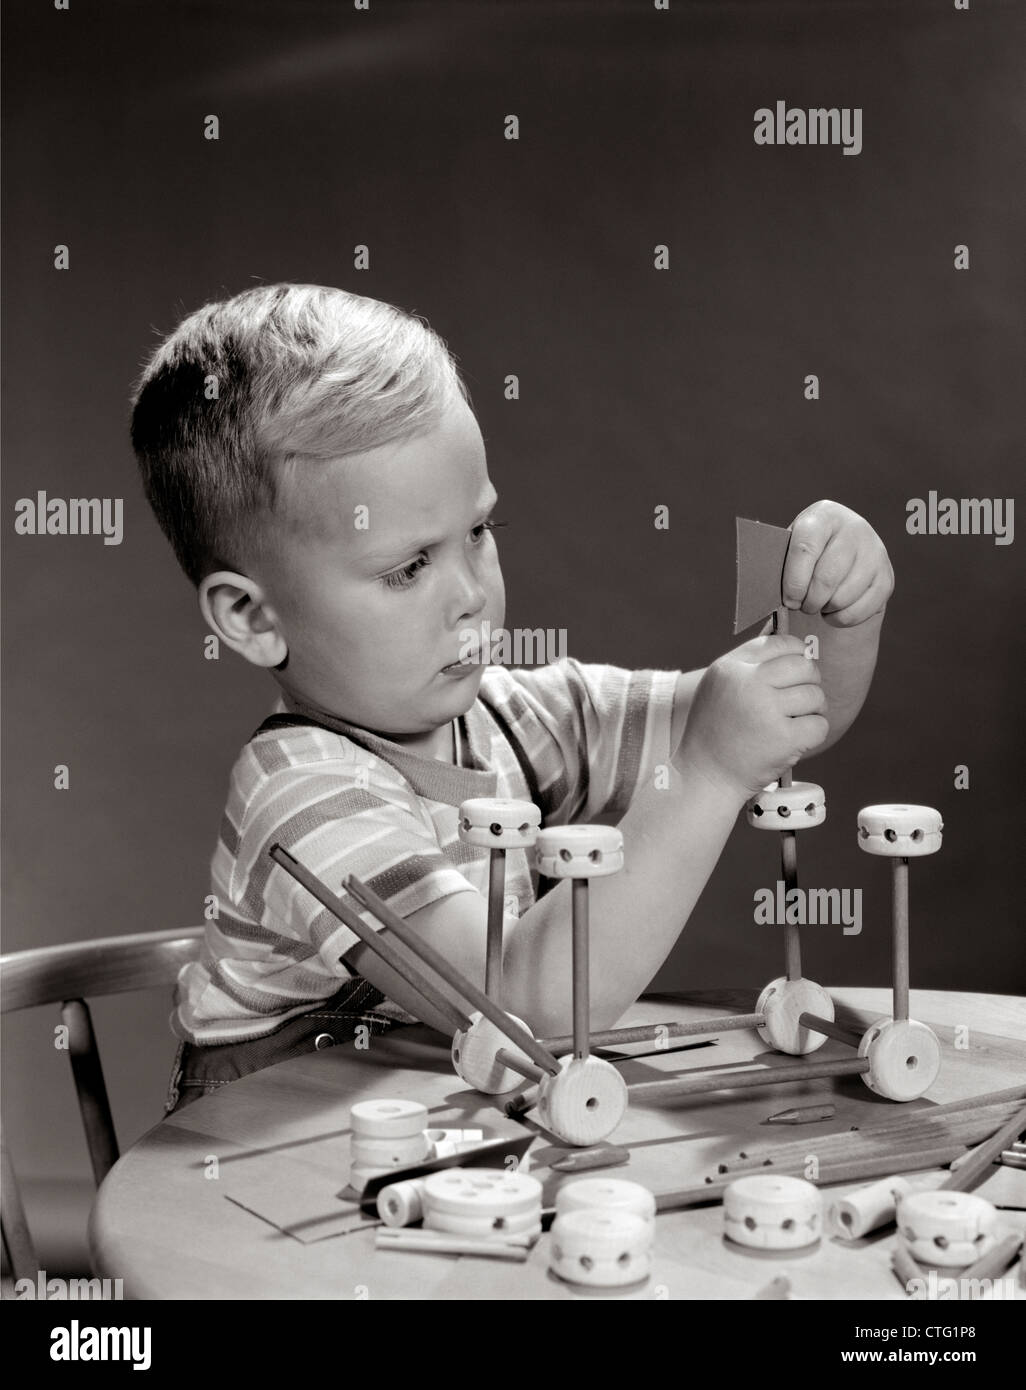 1960s BOY SEATED AT TABLE PLAYING WITH TINKER TOY CONSTRUCTION SET - Stock Image